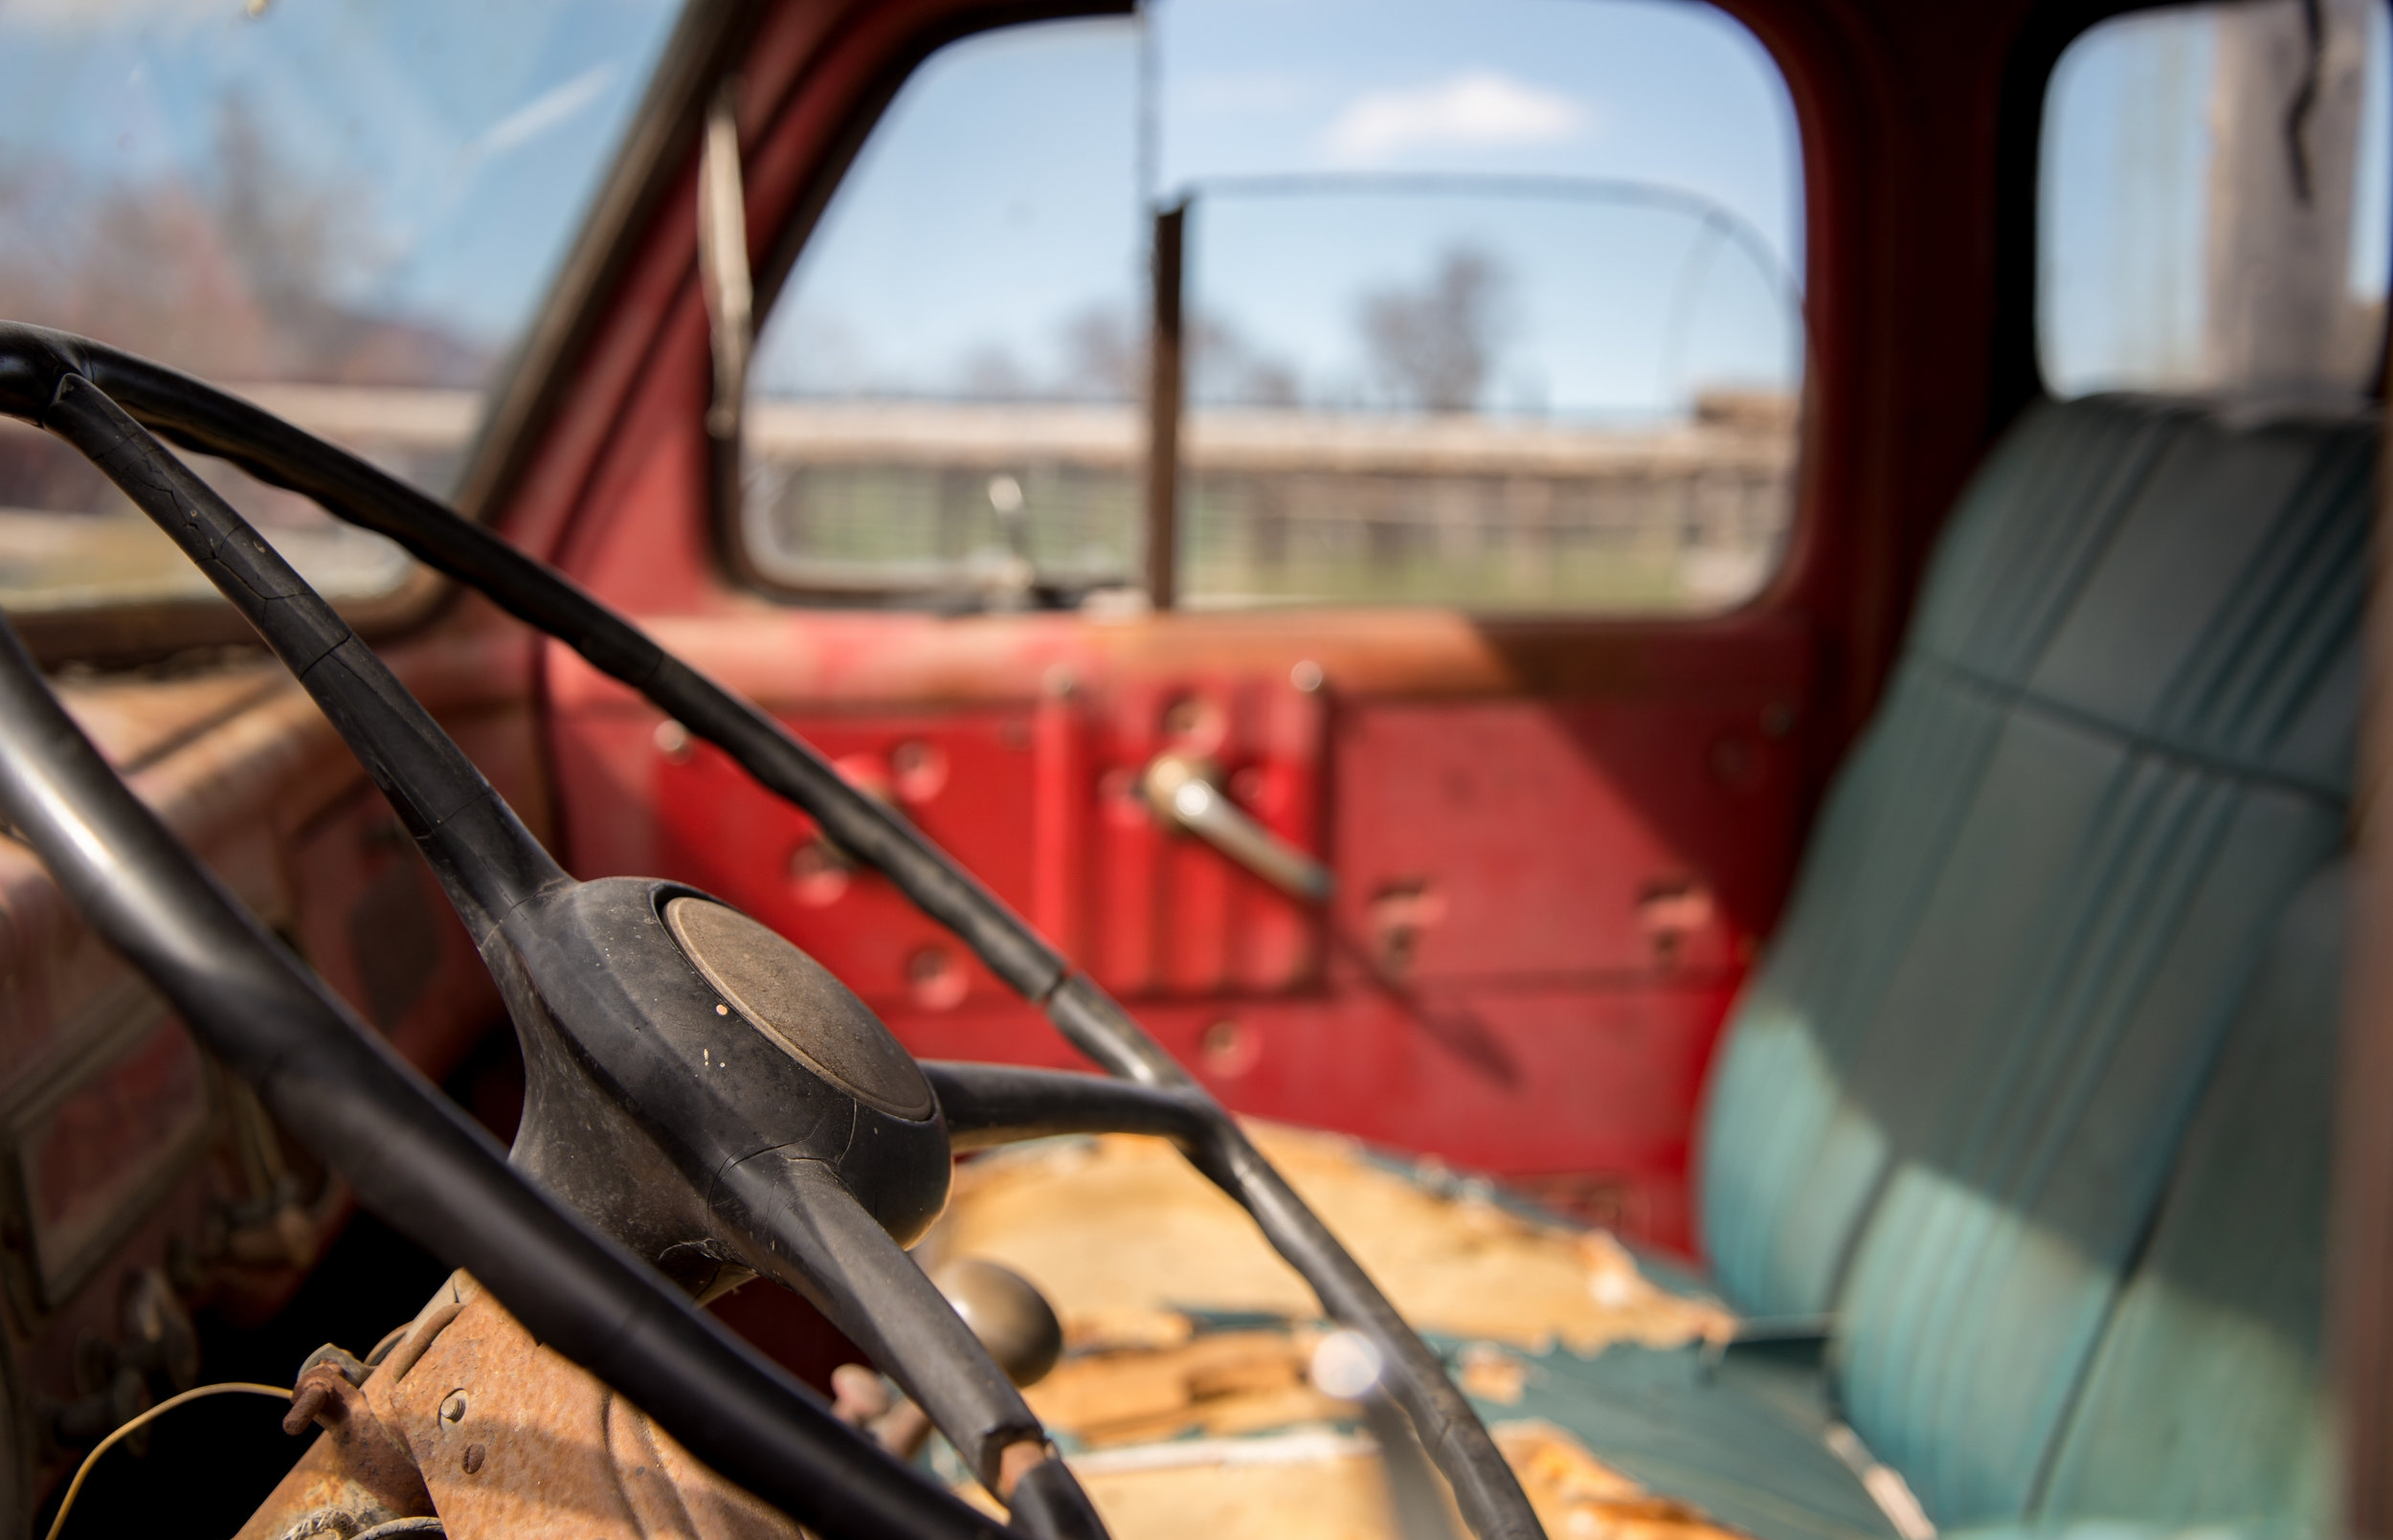 Inside an old truck at the Ranch. Shutter Speed: 1/500 Aperture: f/4.2 ISO: 200